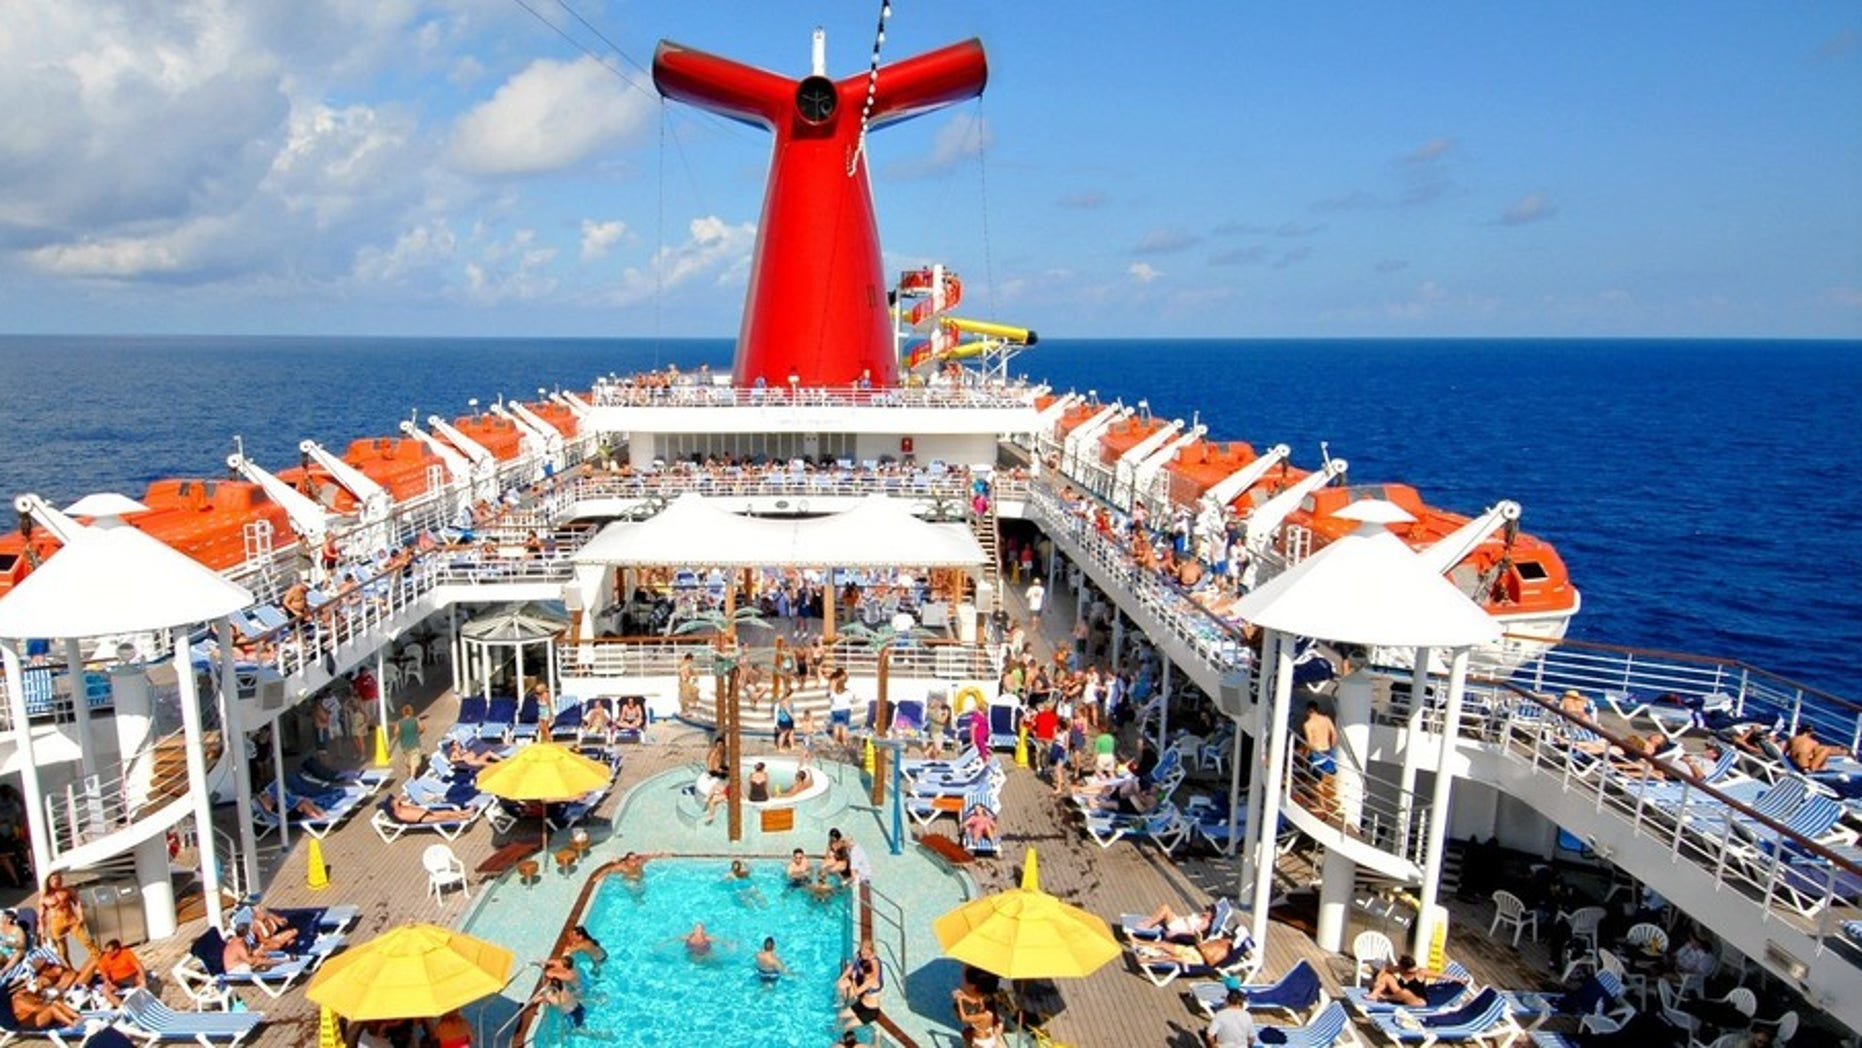 Carnival cruise topless deck